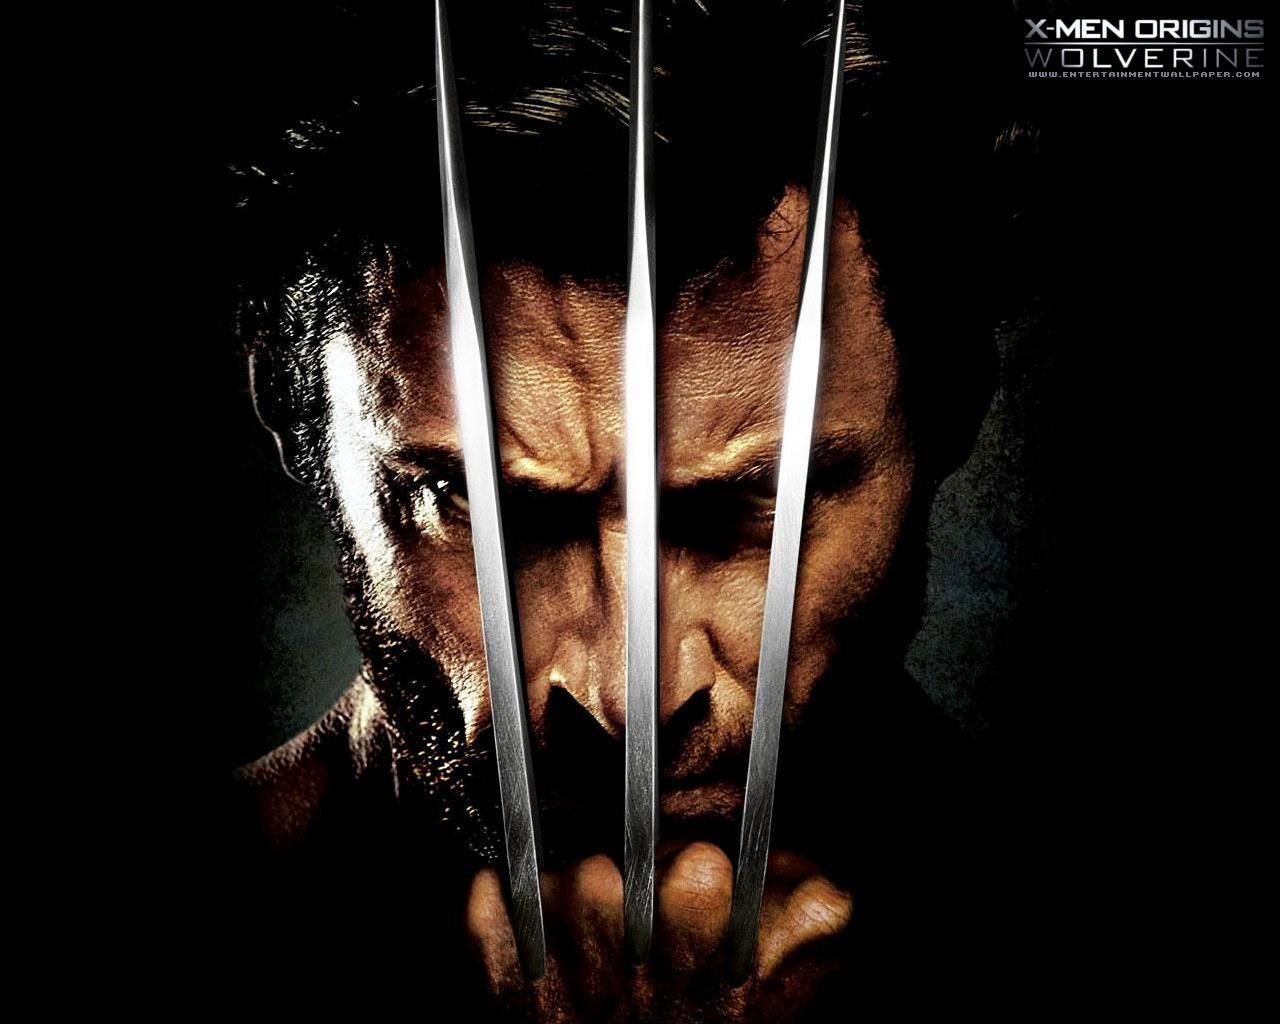 The Wolverine Poster Wallpaper : HD Wallpapers